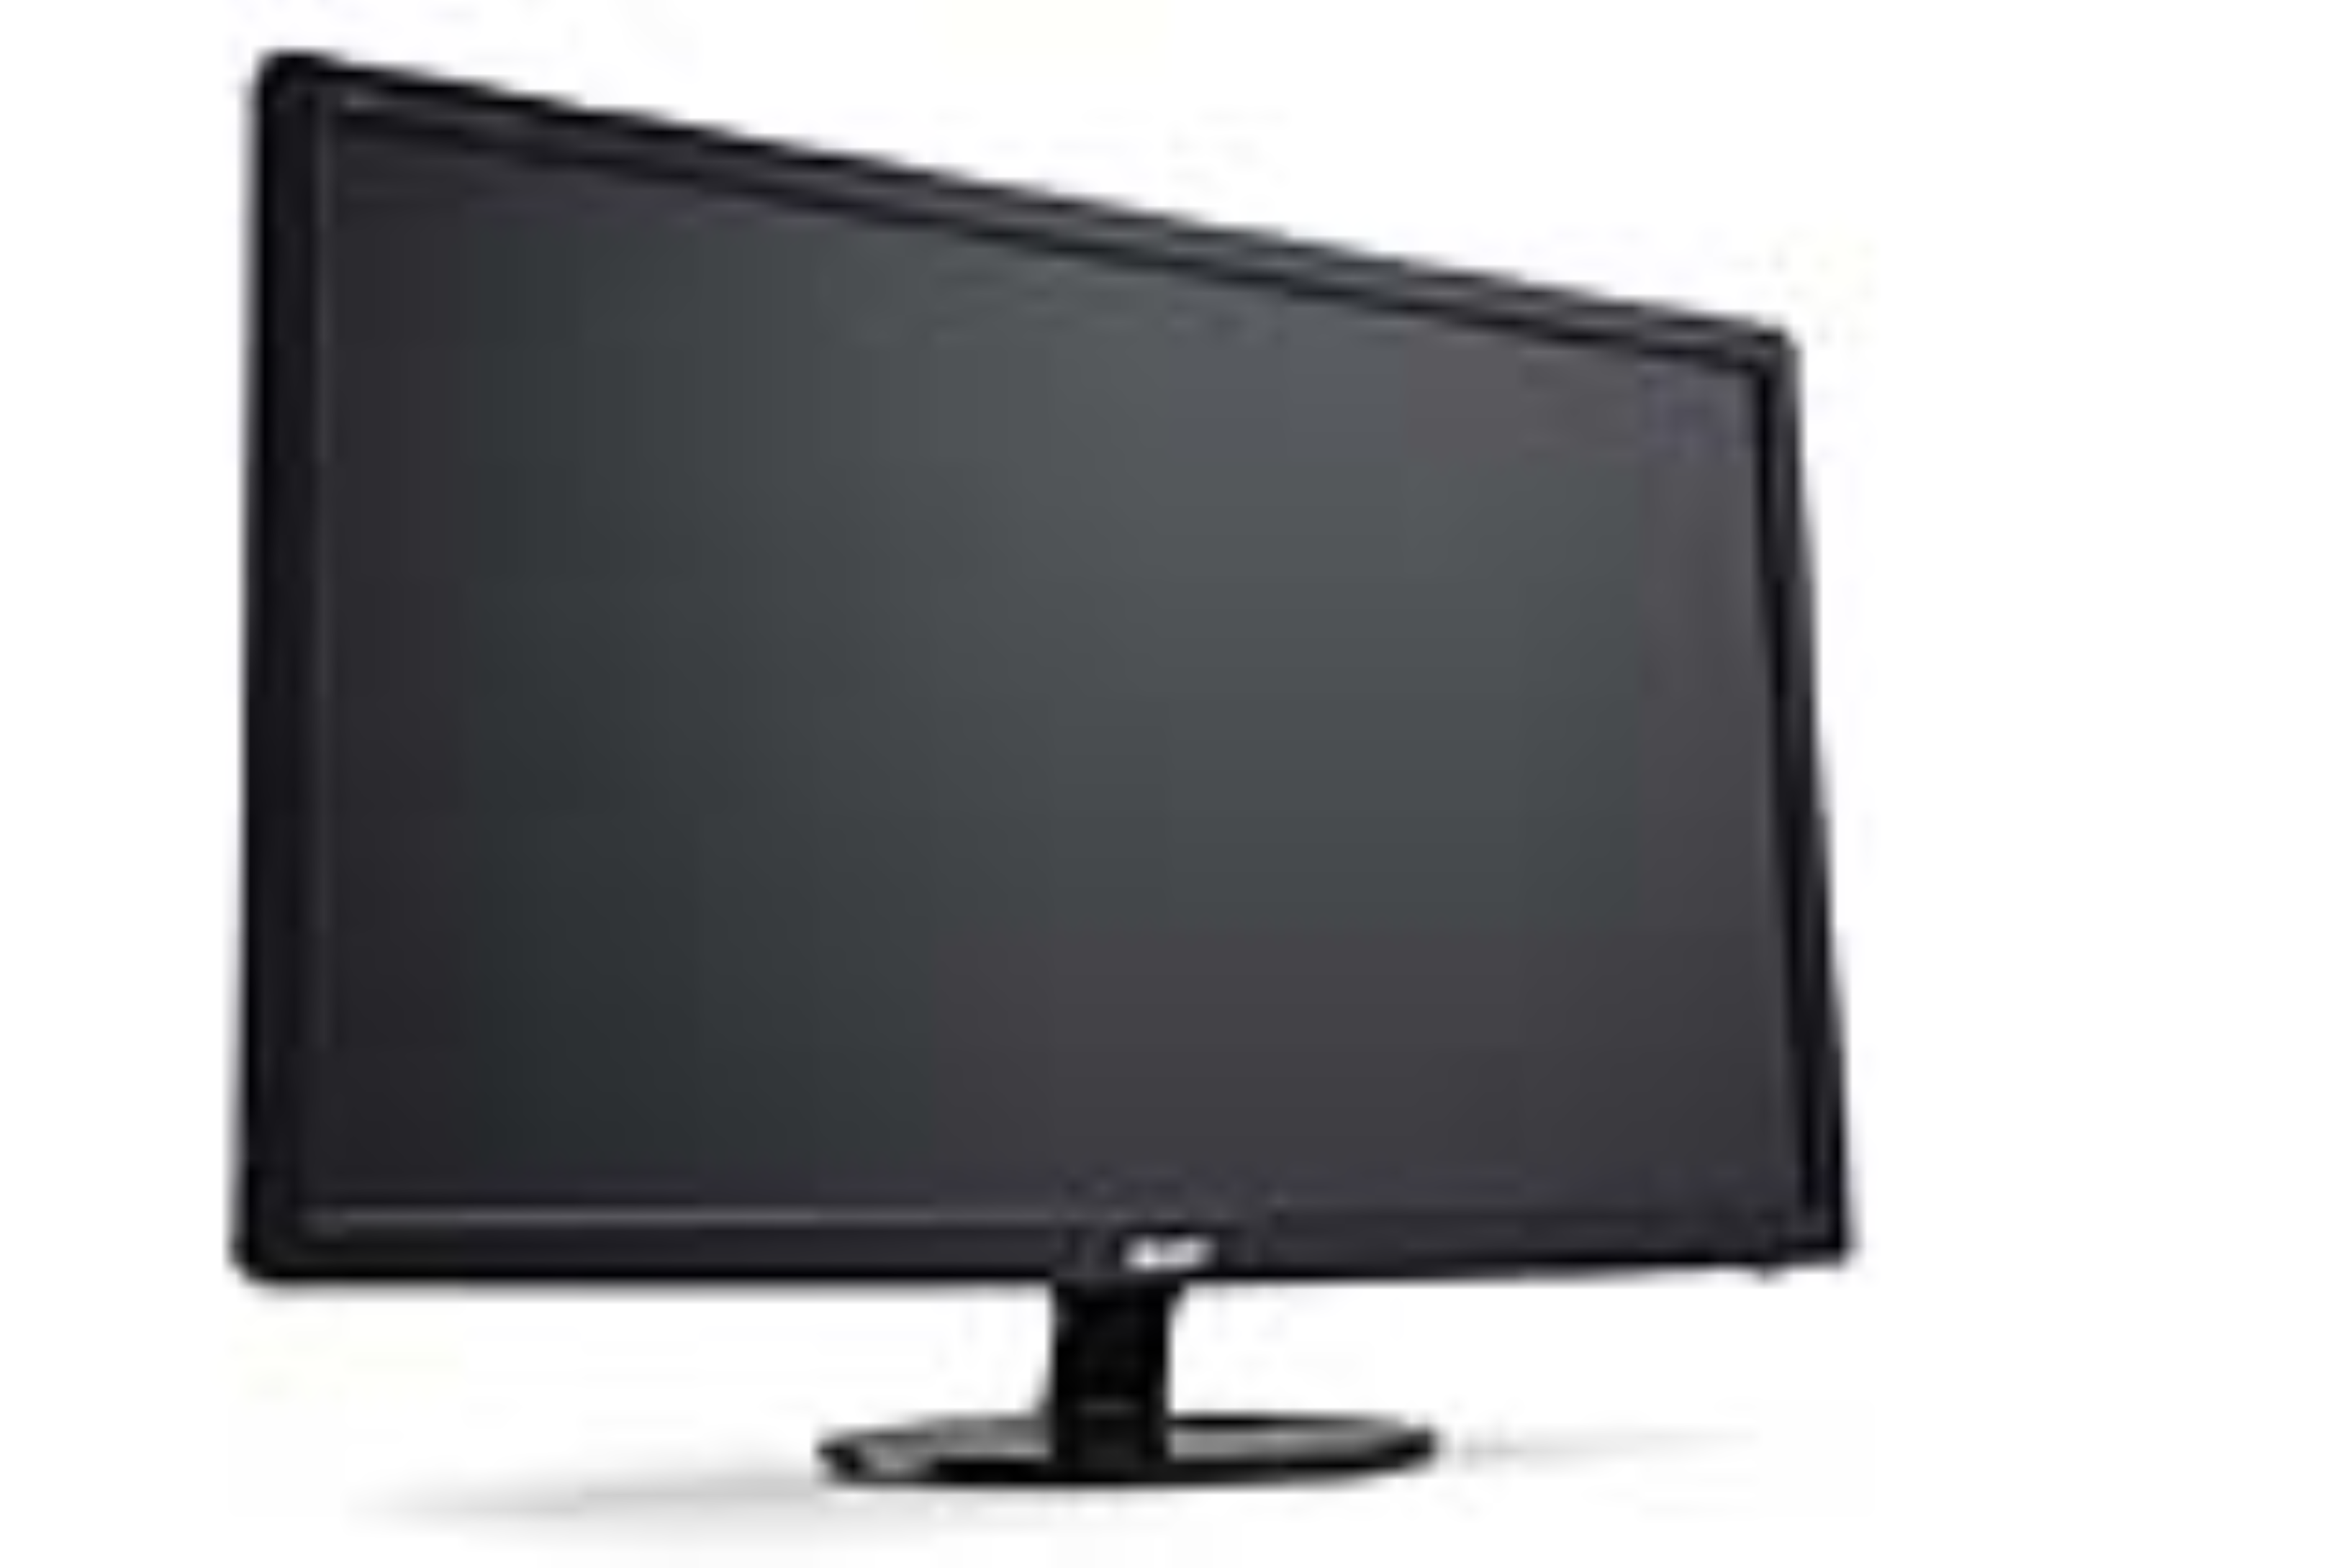 "Acer LCD S241HLCbid 24"" LED, 1920 x 1080, 100M:1, 250cd/m2, 1ms, VGA, DVI, HDMI, Black SLIM Design"